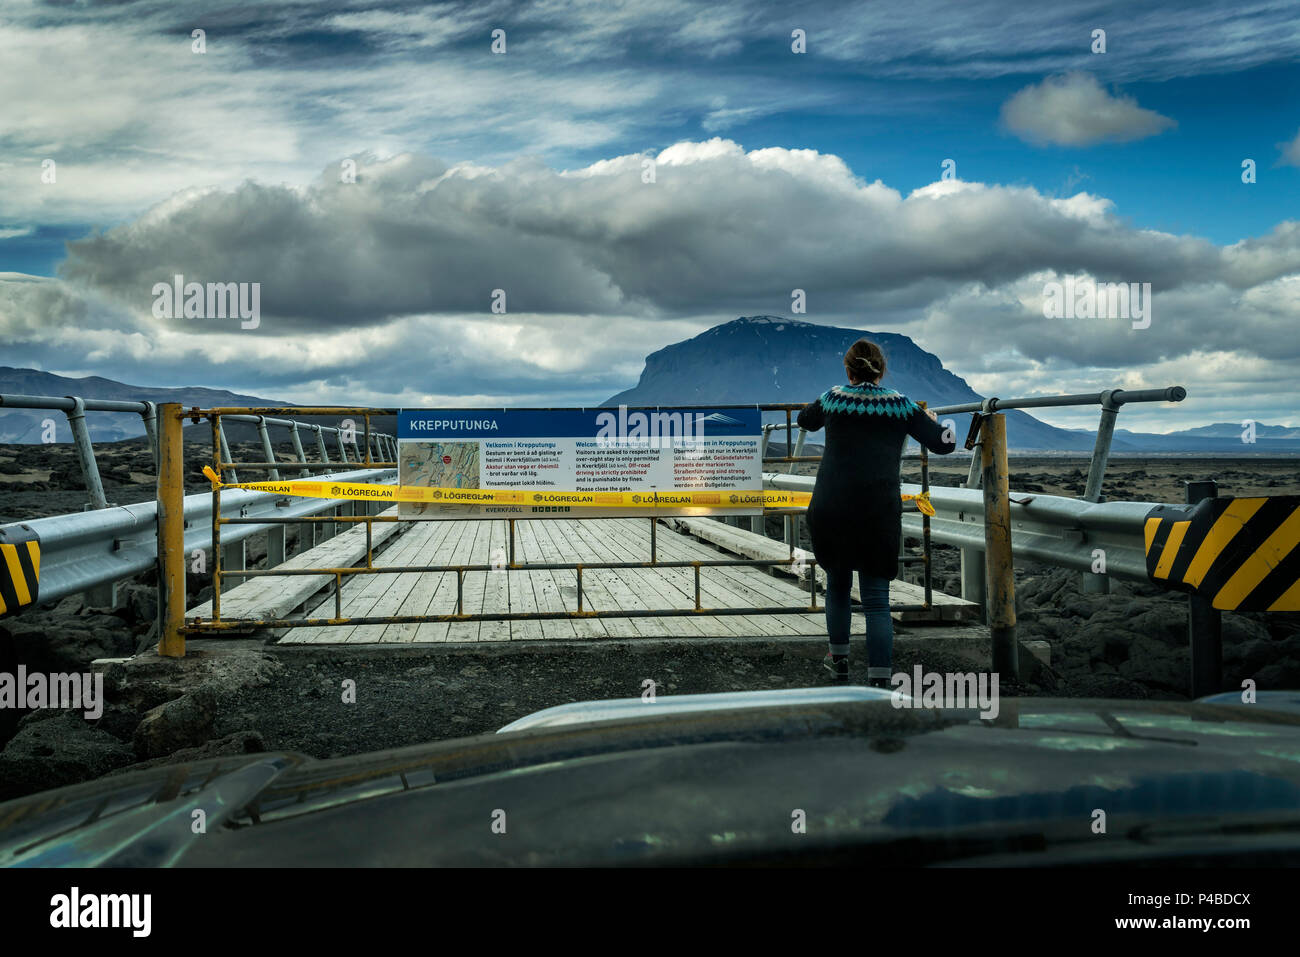 Woman standing by a closed bridge-Krepputunga area, by the Holuhraun Fissure Eruption, near the Bardarbunga Volcano, Iceland. August 29, 2014 a fissure eruption started in Holuhraun at the northern end of a magma intrusion, which had moved progressively north, from the Bardarbunga volcano. Picture Date-Sept. 2, 2014 - Stock Image